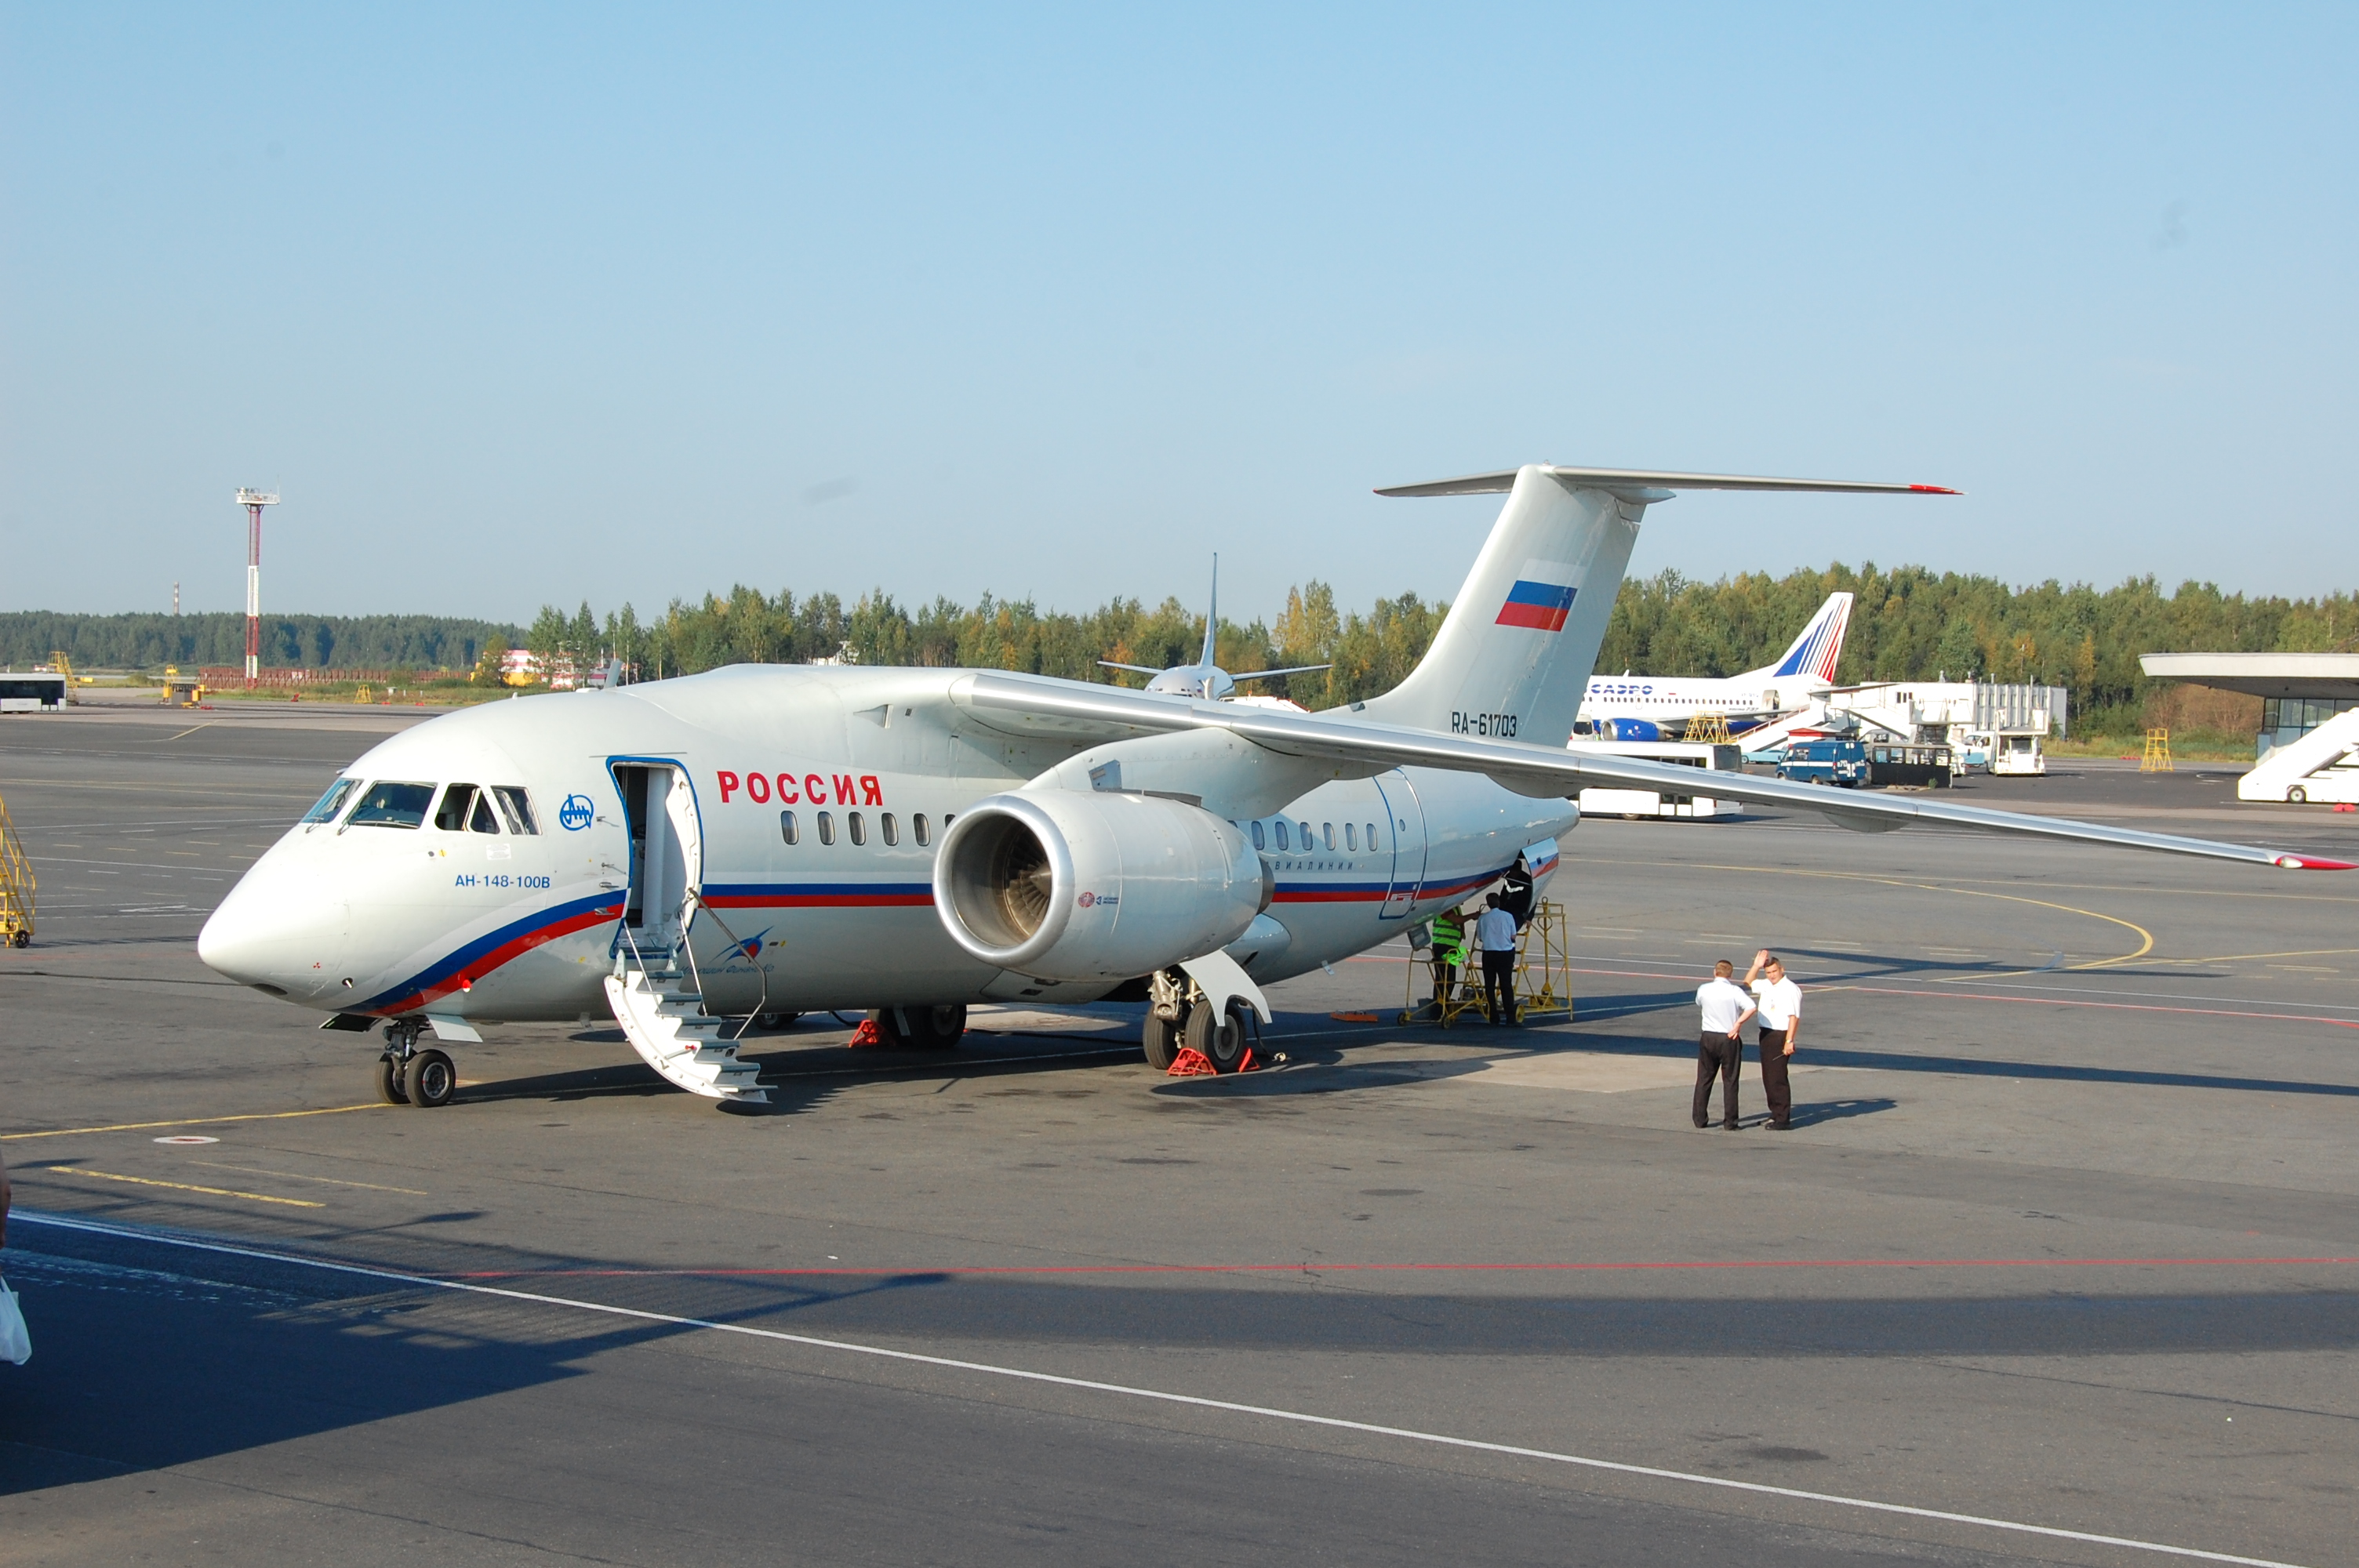 http://dic.academic.ru/pictures/wiki/files/65/AN-148-100B_(RA-61703)_at_Pulkovo_Airport_12Aug10.JPG